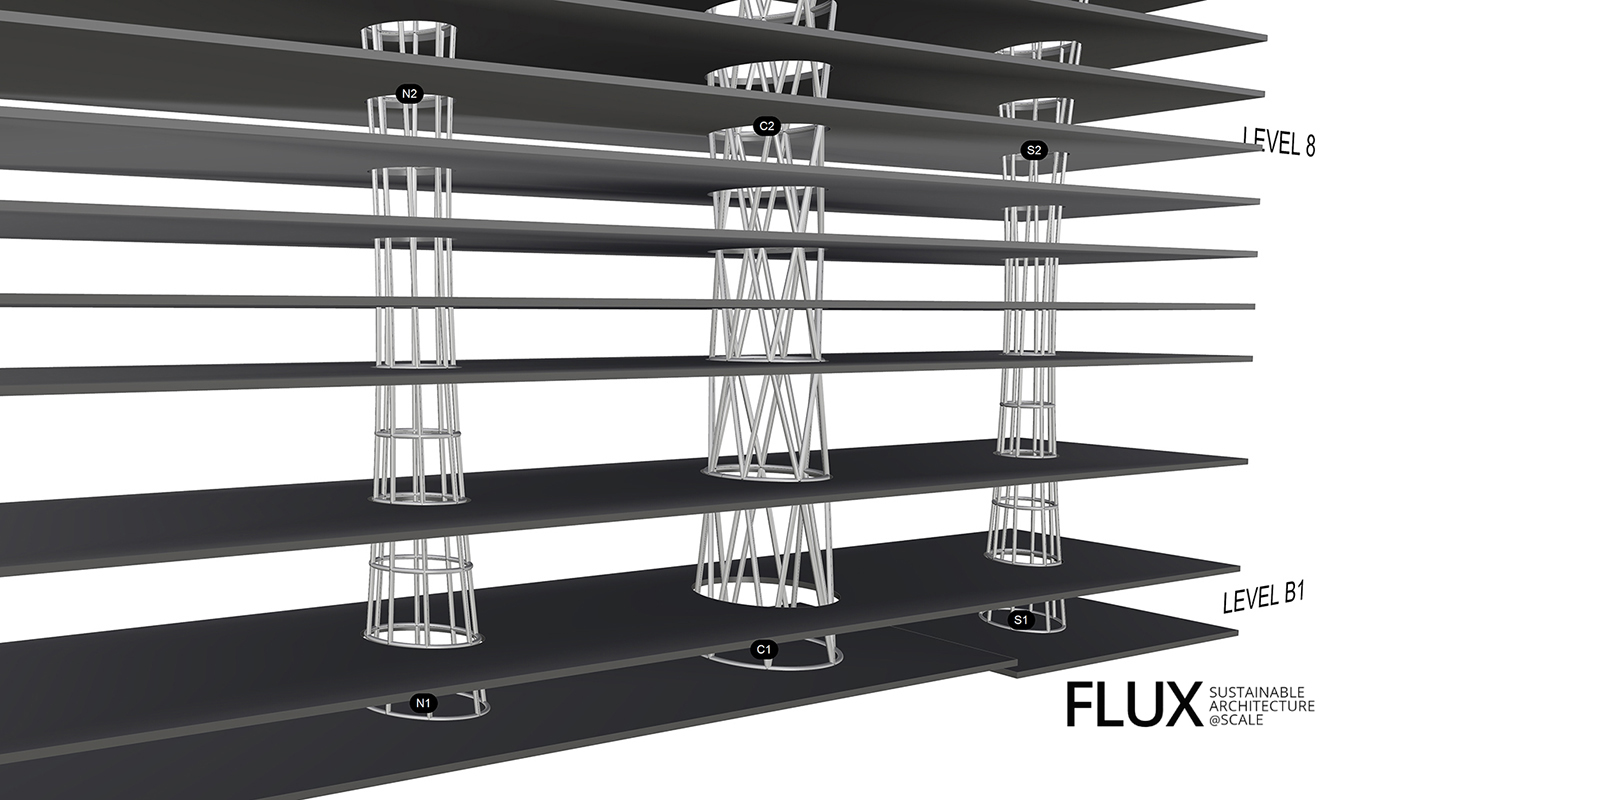 Rhino_Structural tubes_Flux_1600x800